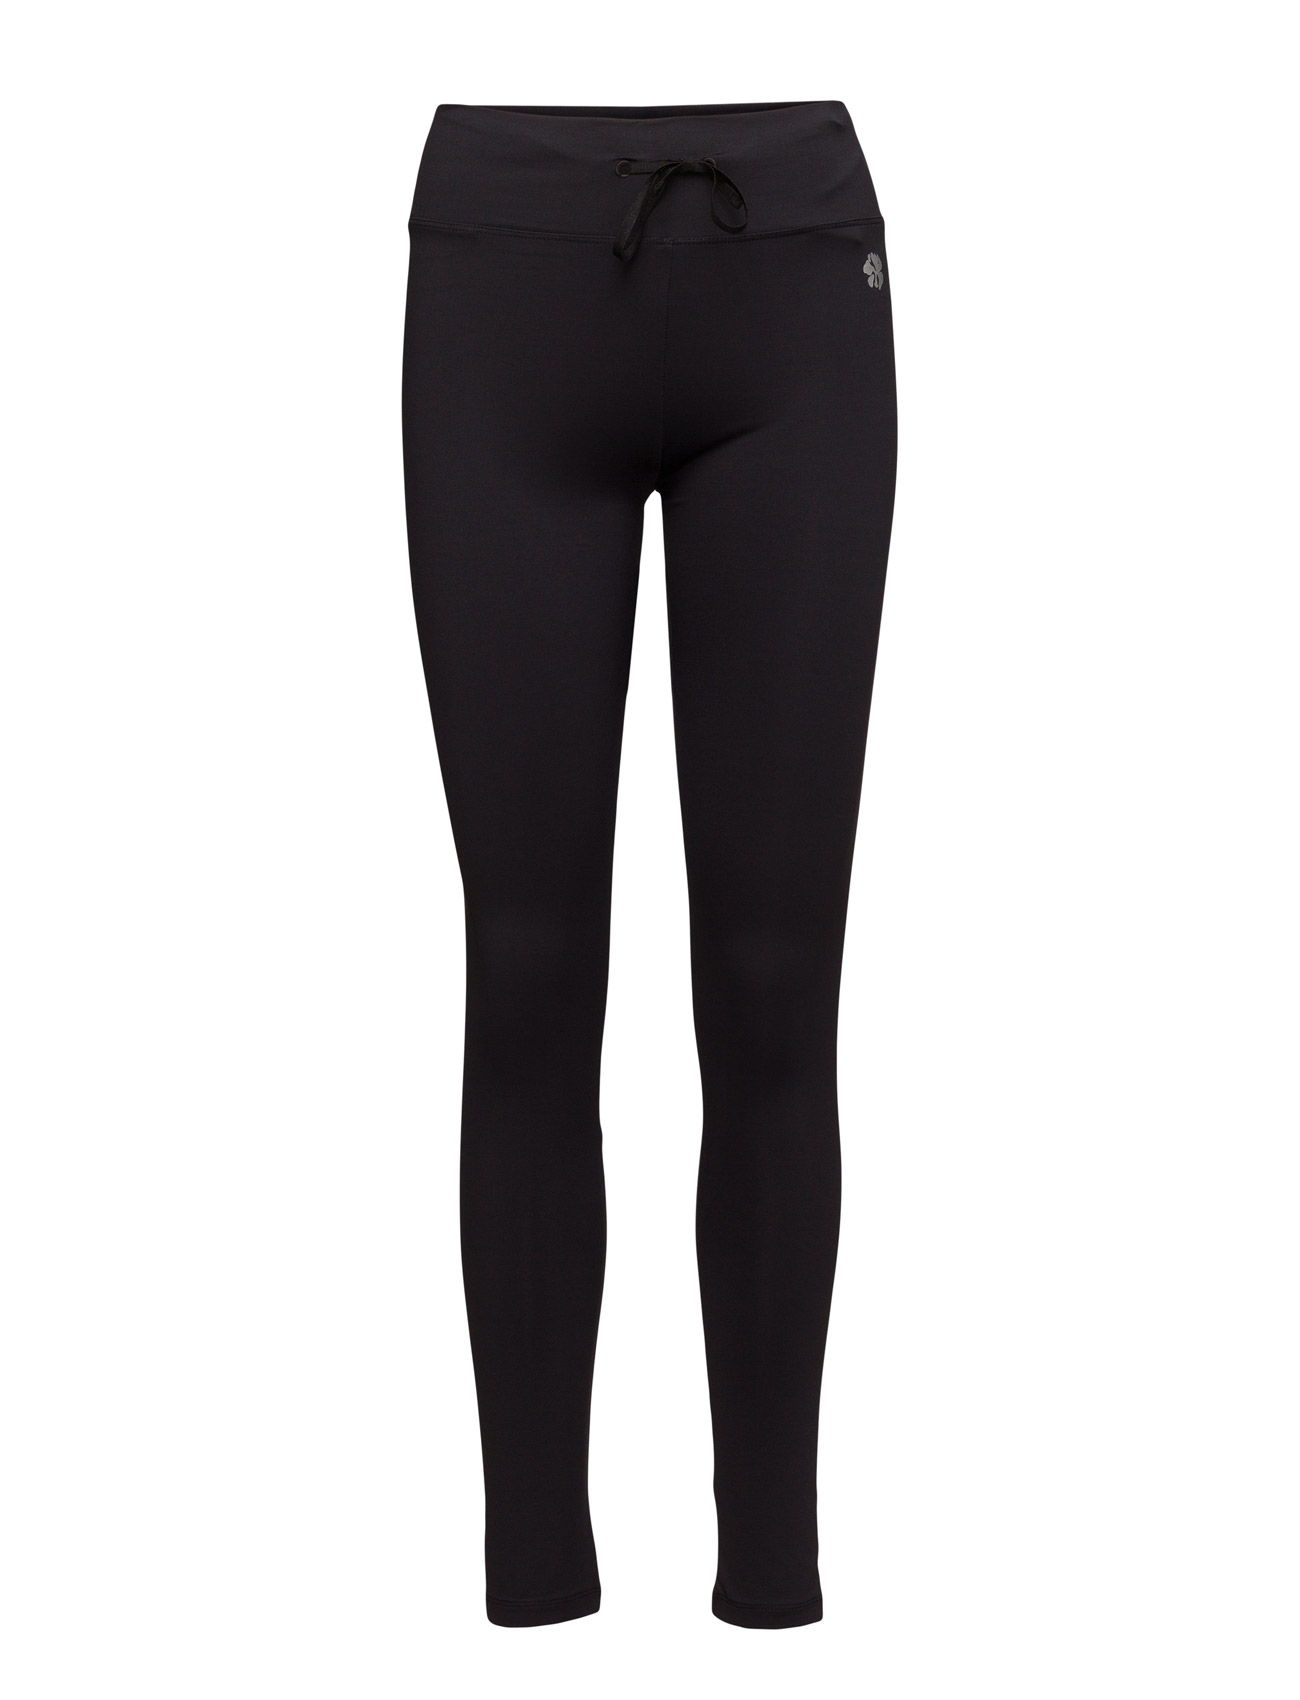 Filippa K Yoga Leggings